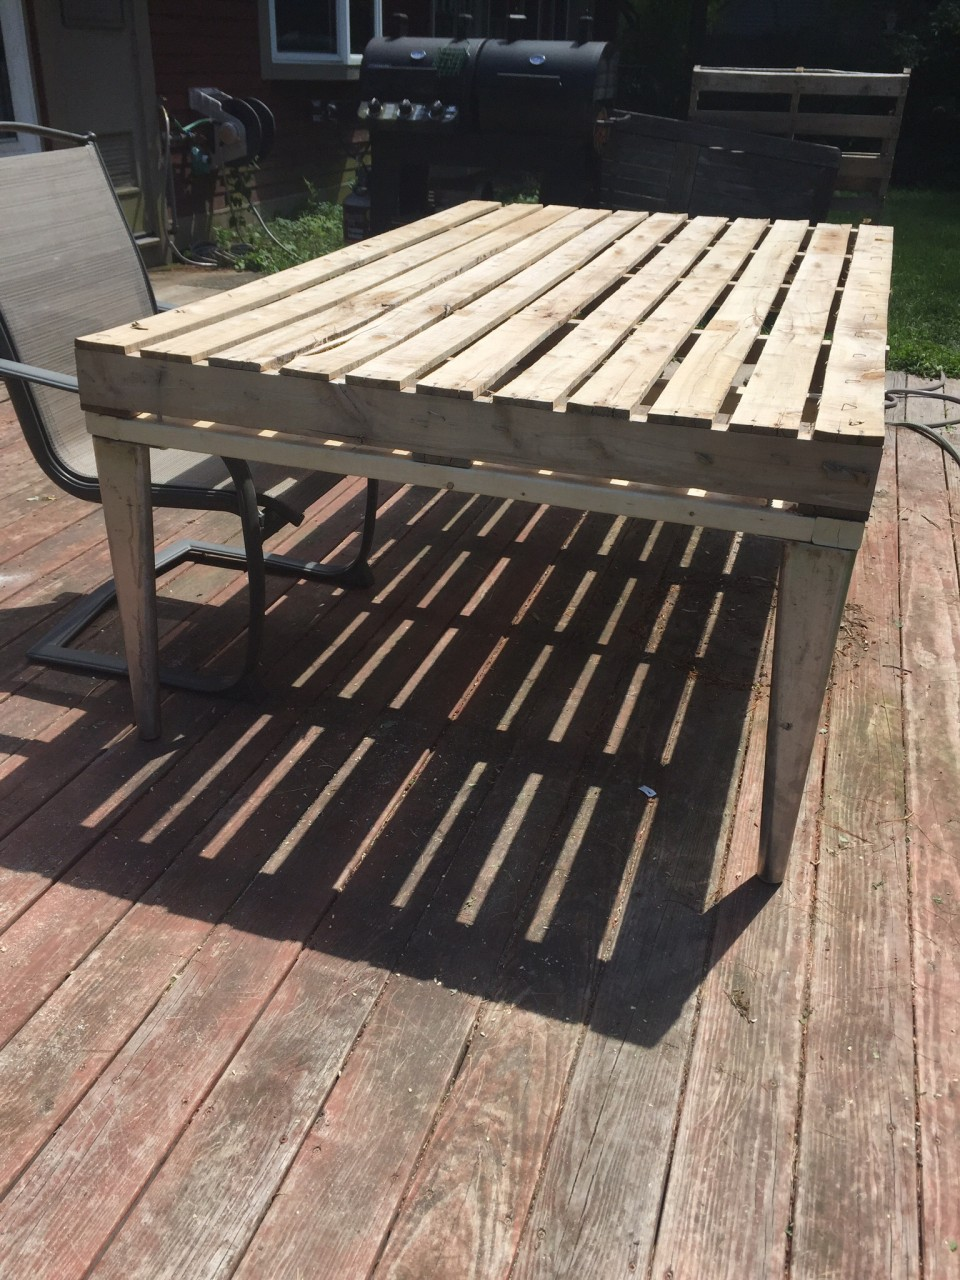 Patio coffee table out of wooden pallets pallet ideas for Pallet furniture projects